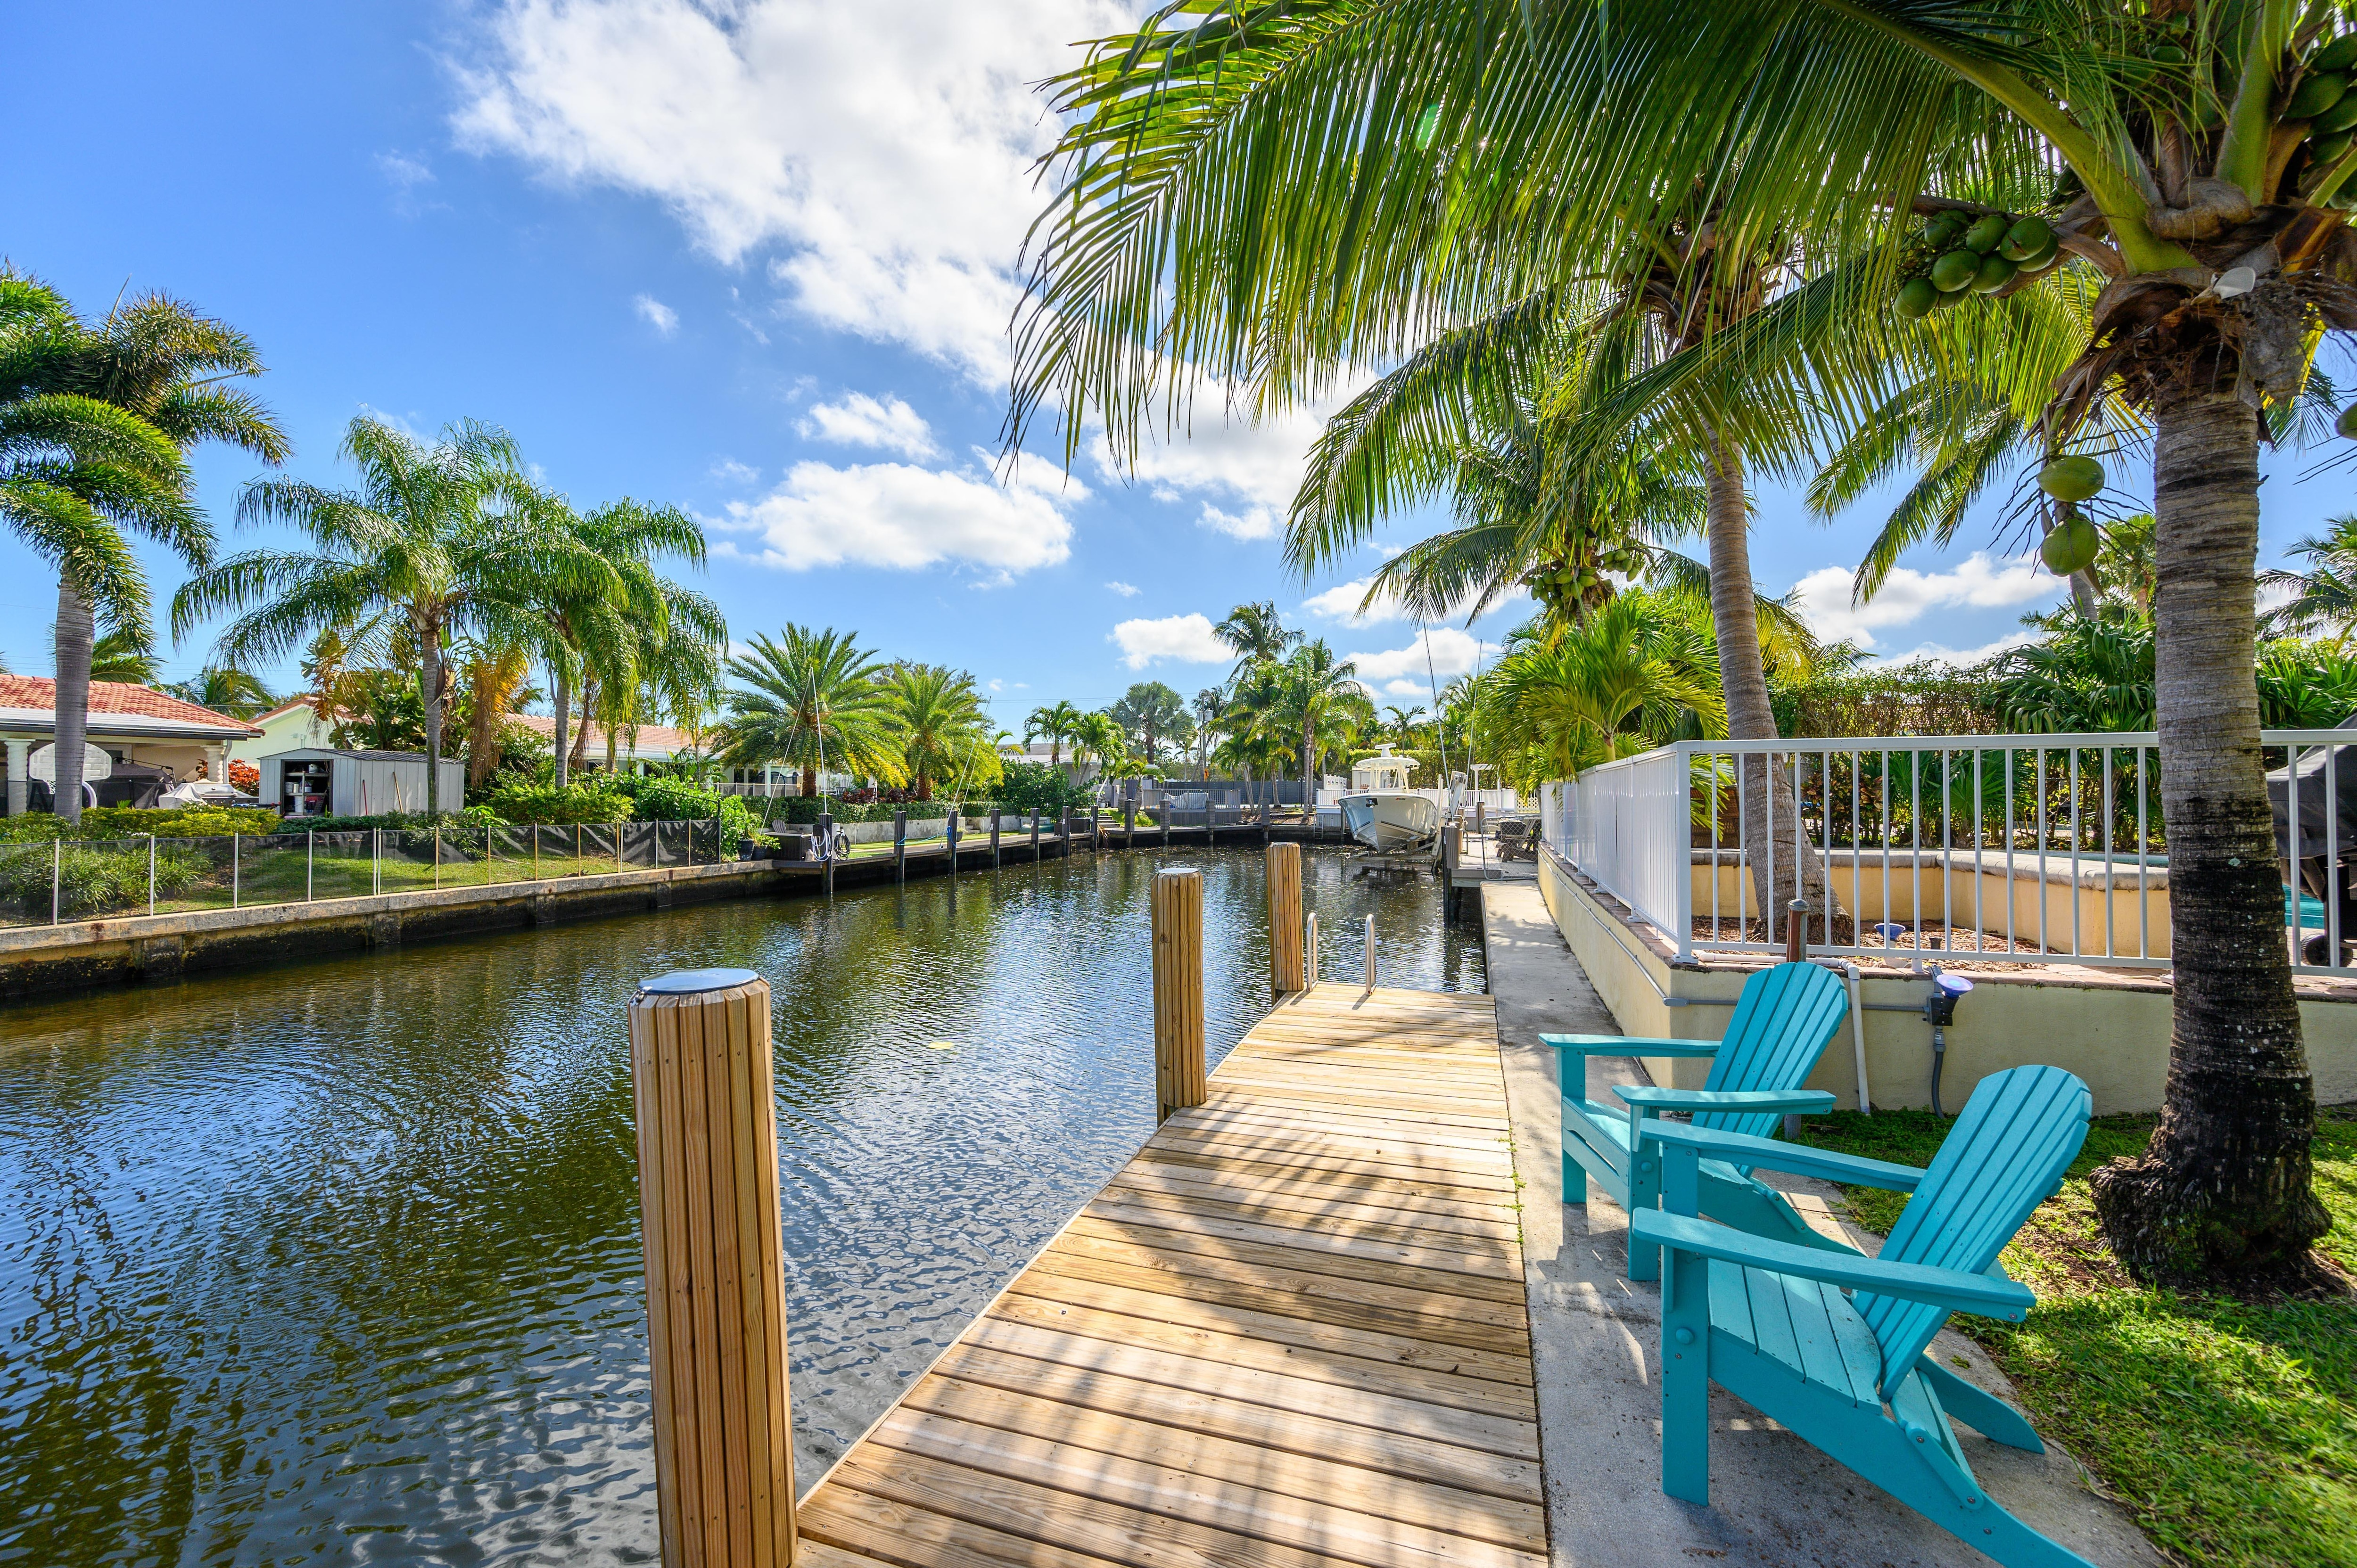 Feel the breeze through the palm trees as you unwind on your private dock.